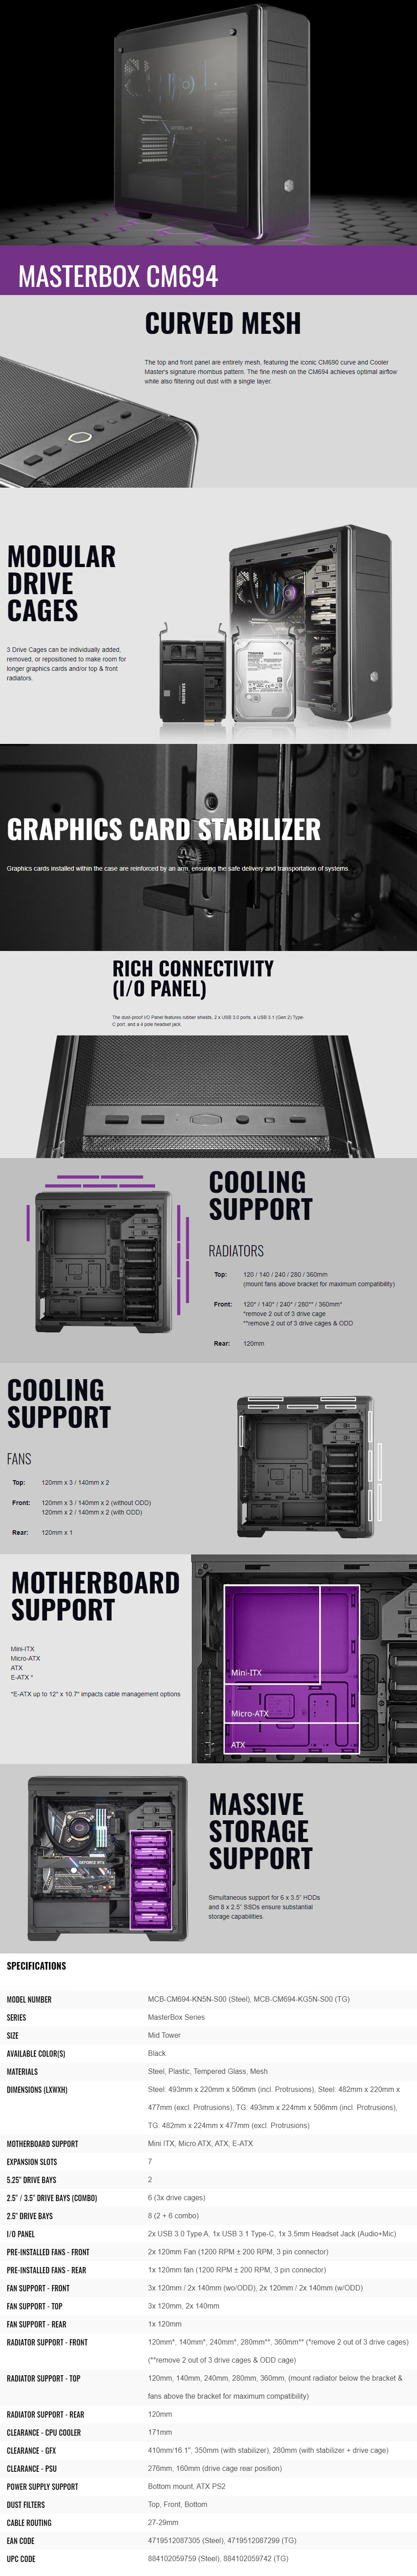 Cooler Master Masterbox CM694 Tempered Glass E-ATX Mid-Tower Case - Black - Overview